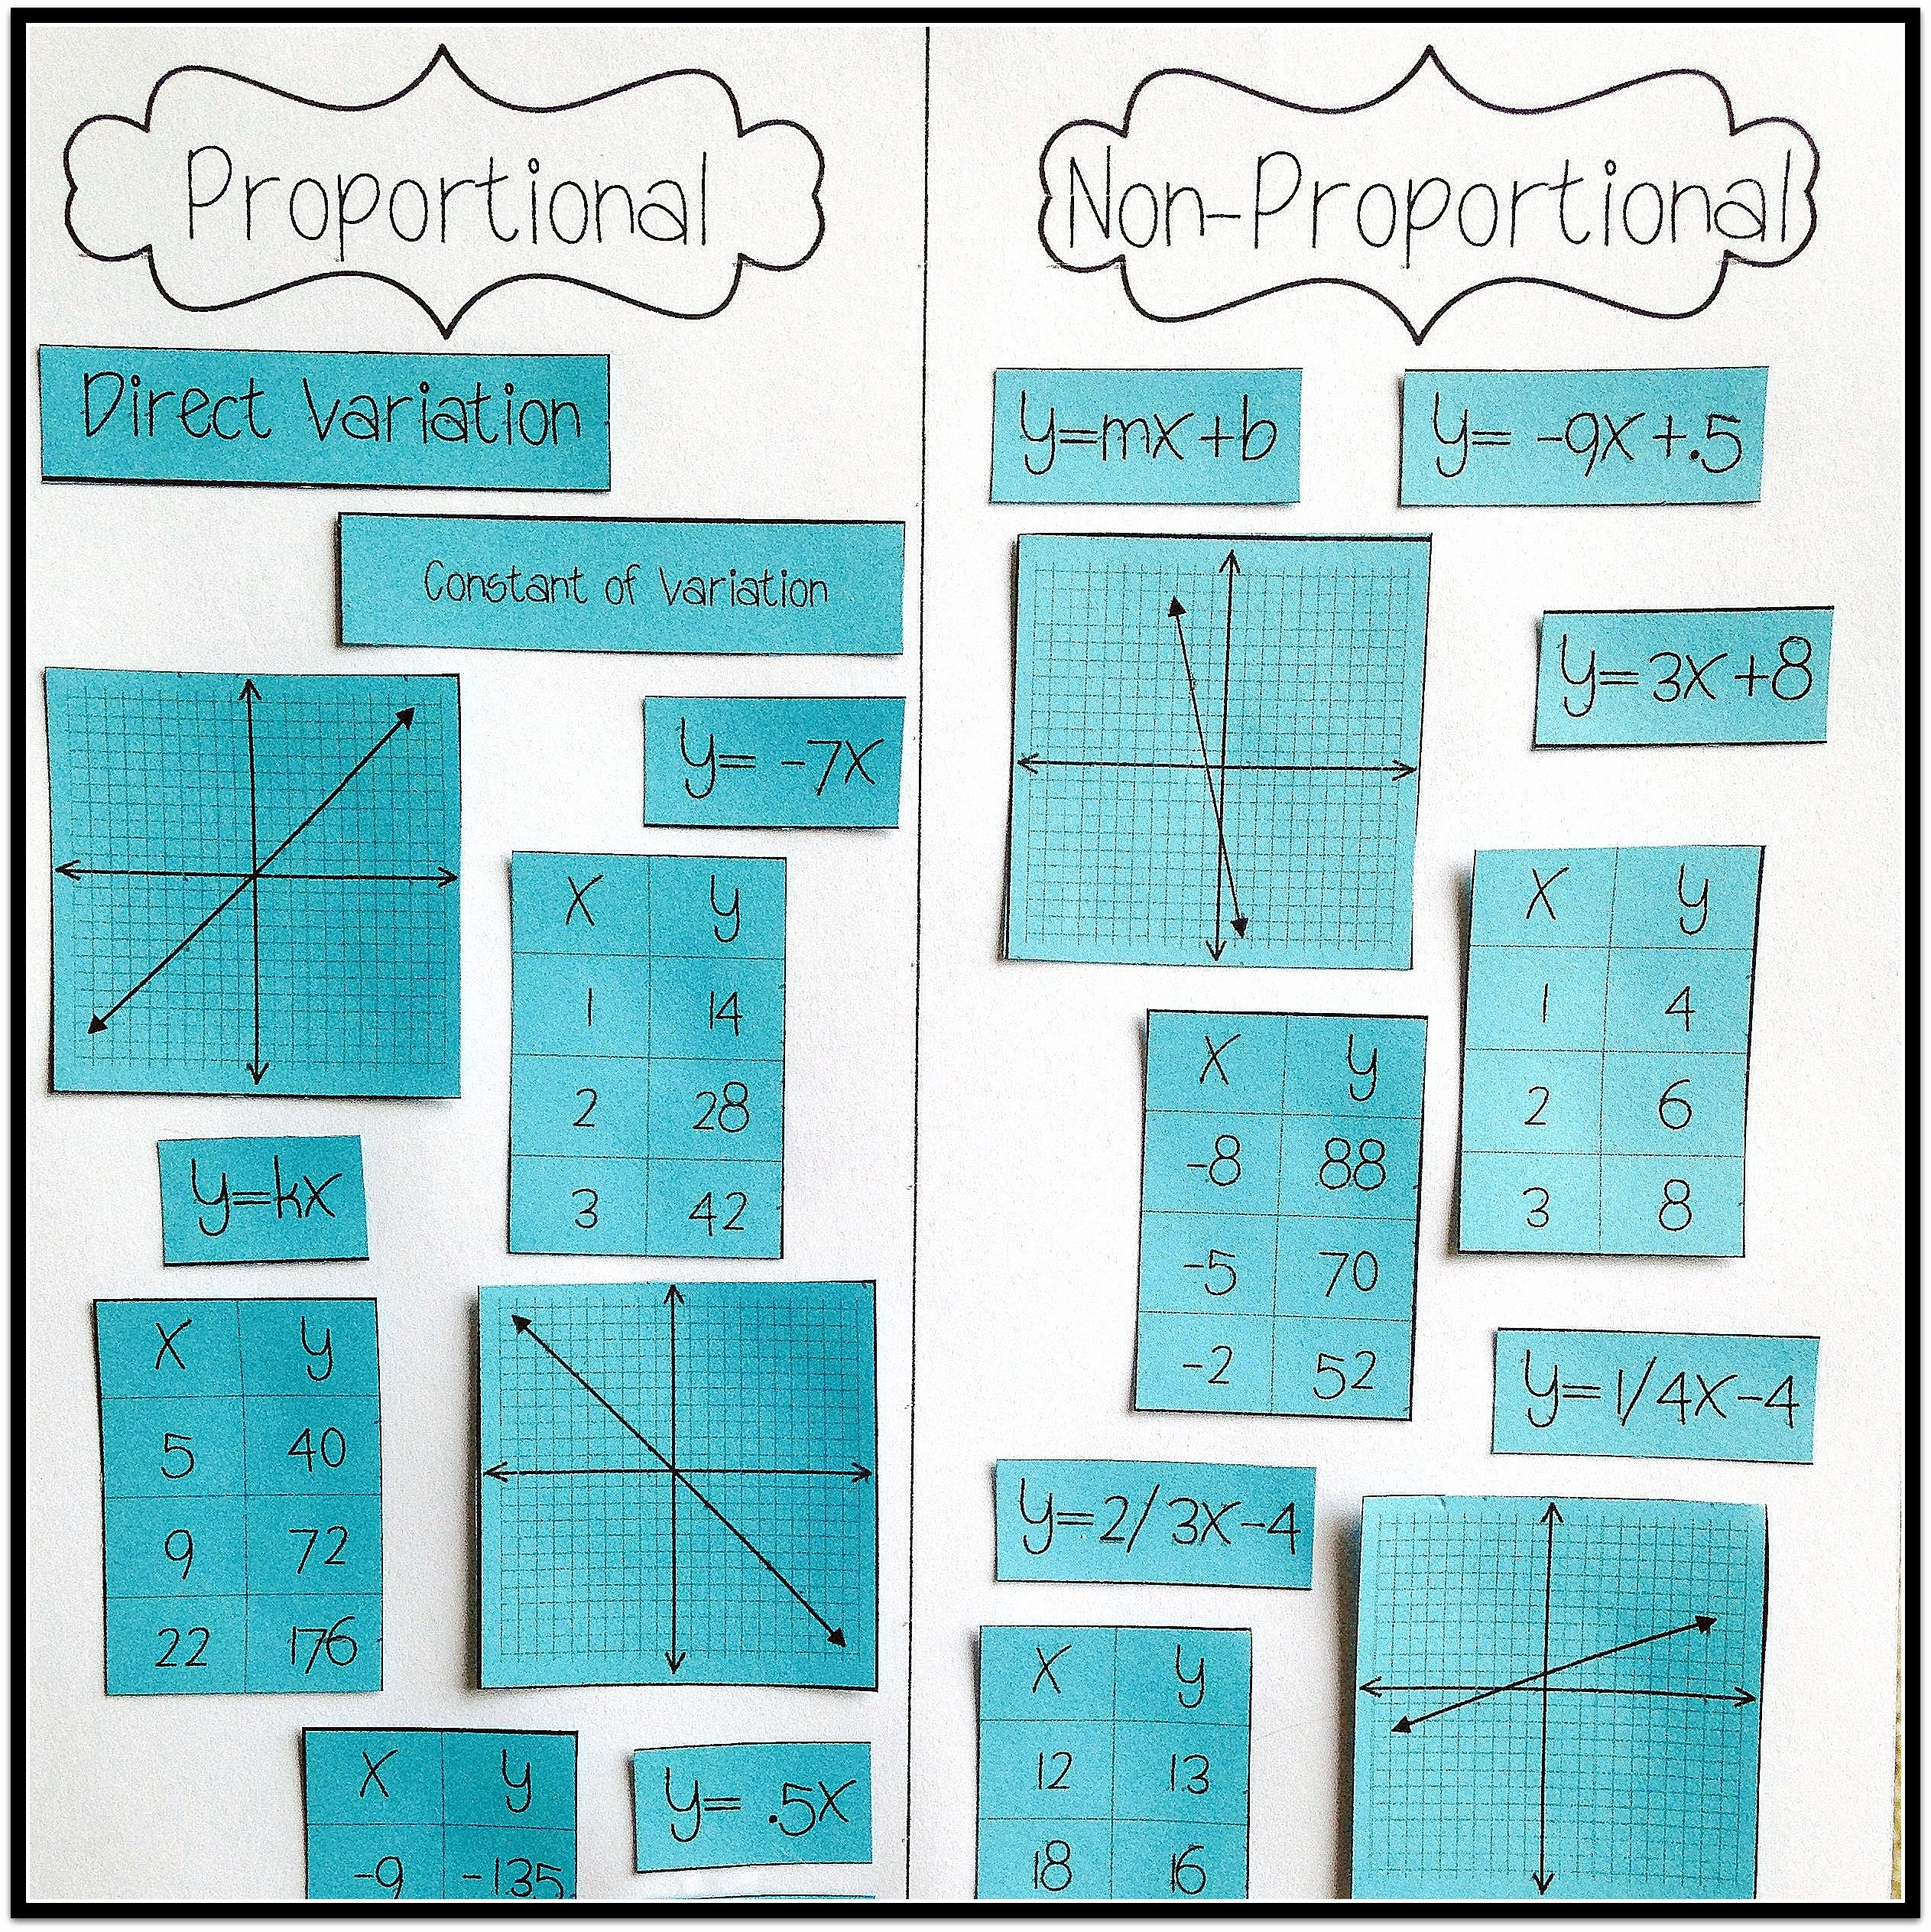 Proportional and Nonproportional Relationships Worksheet Unique Proportional Vs Non Proportional Card sort & Homework